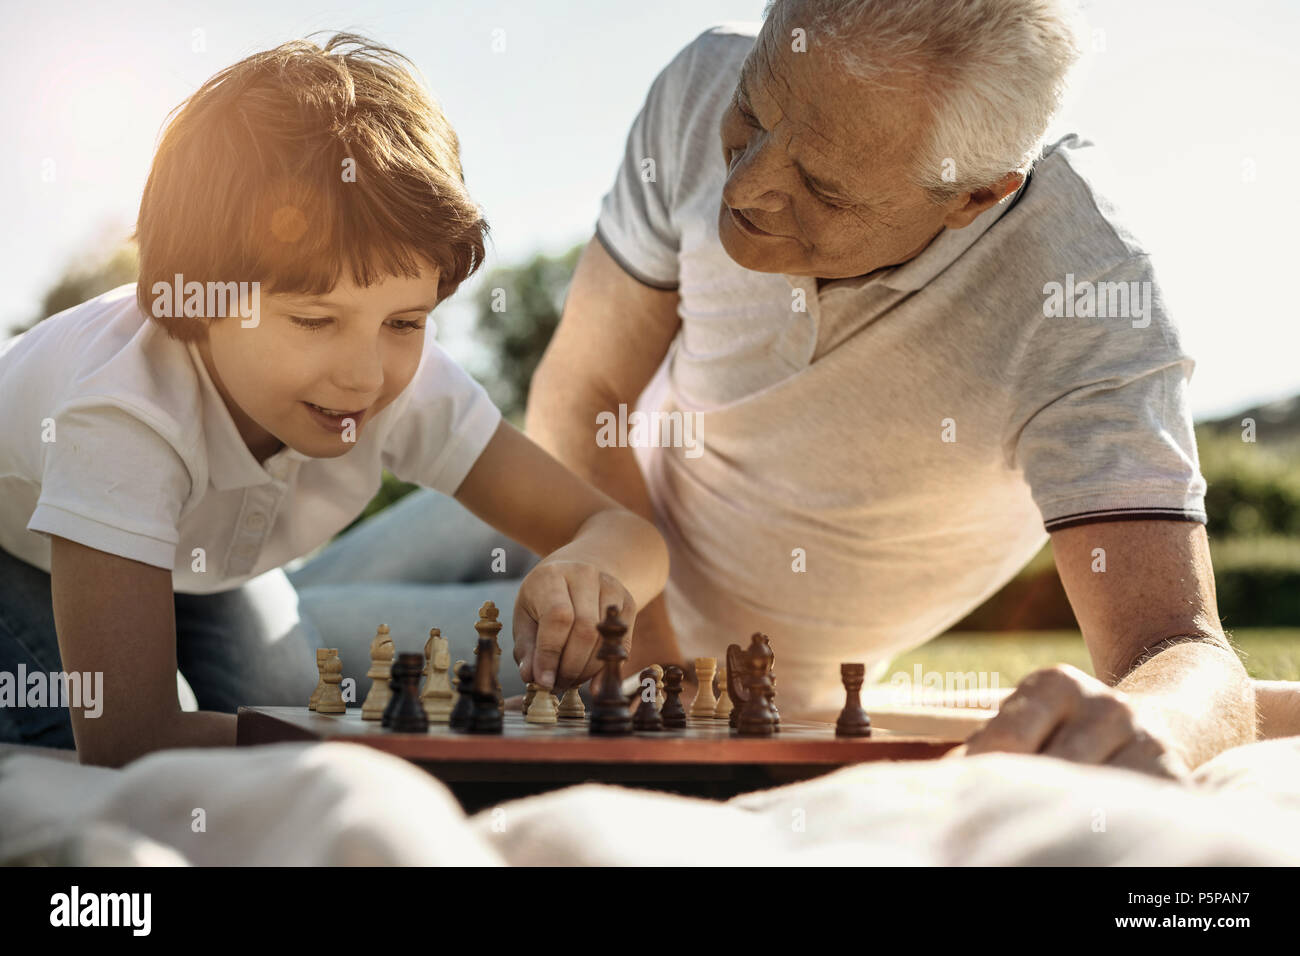 Boy and his grandpa playing chess - Stock Image